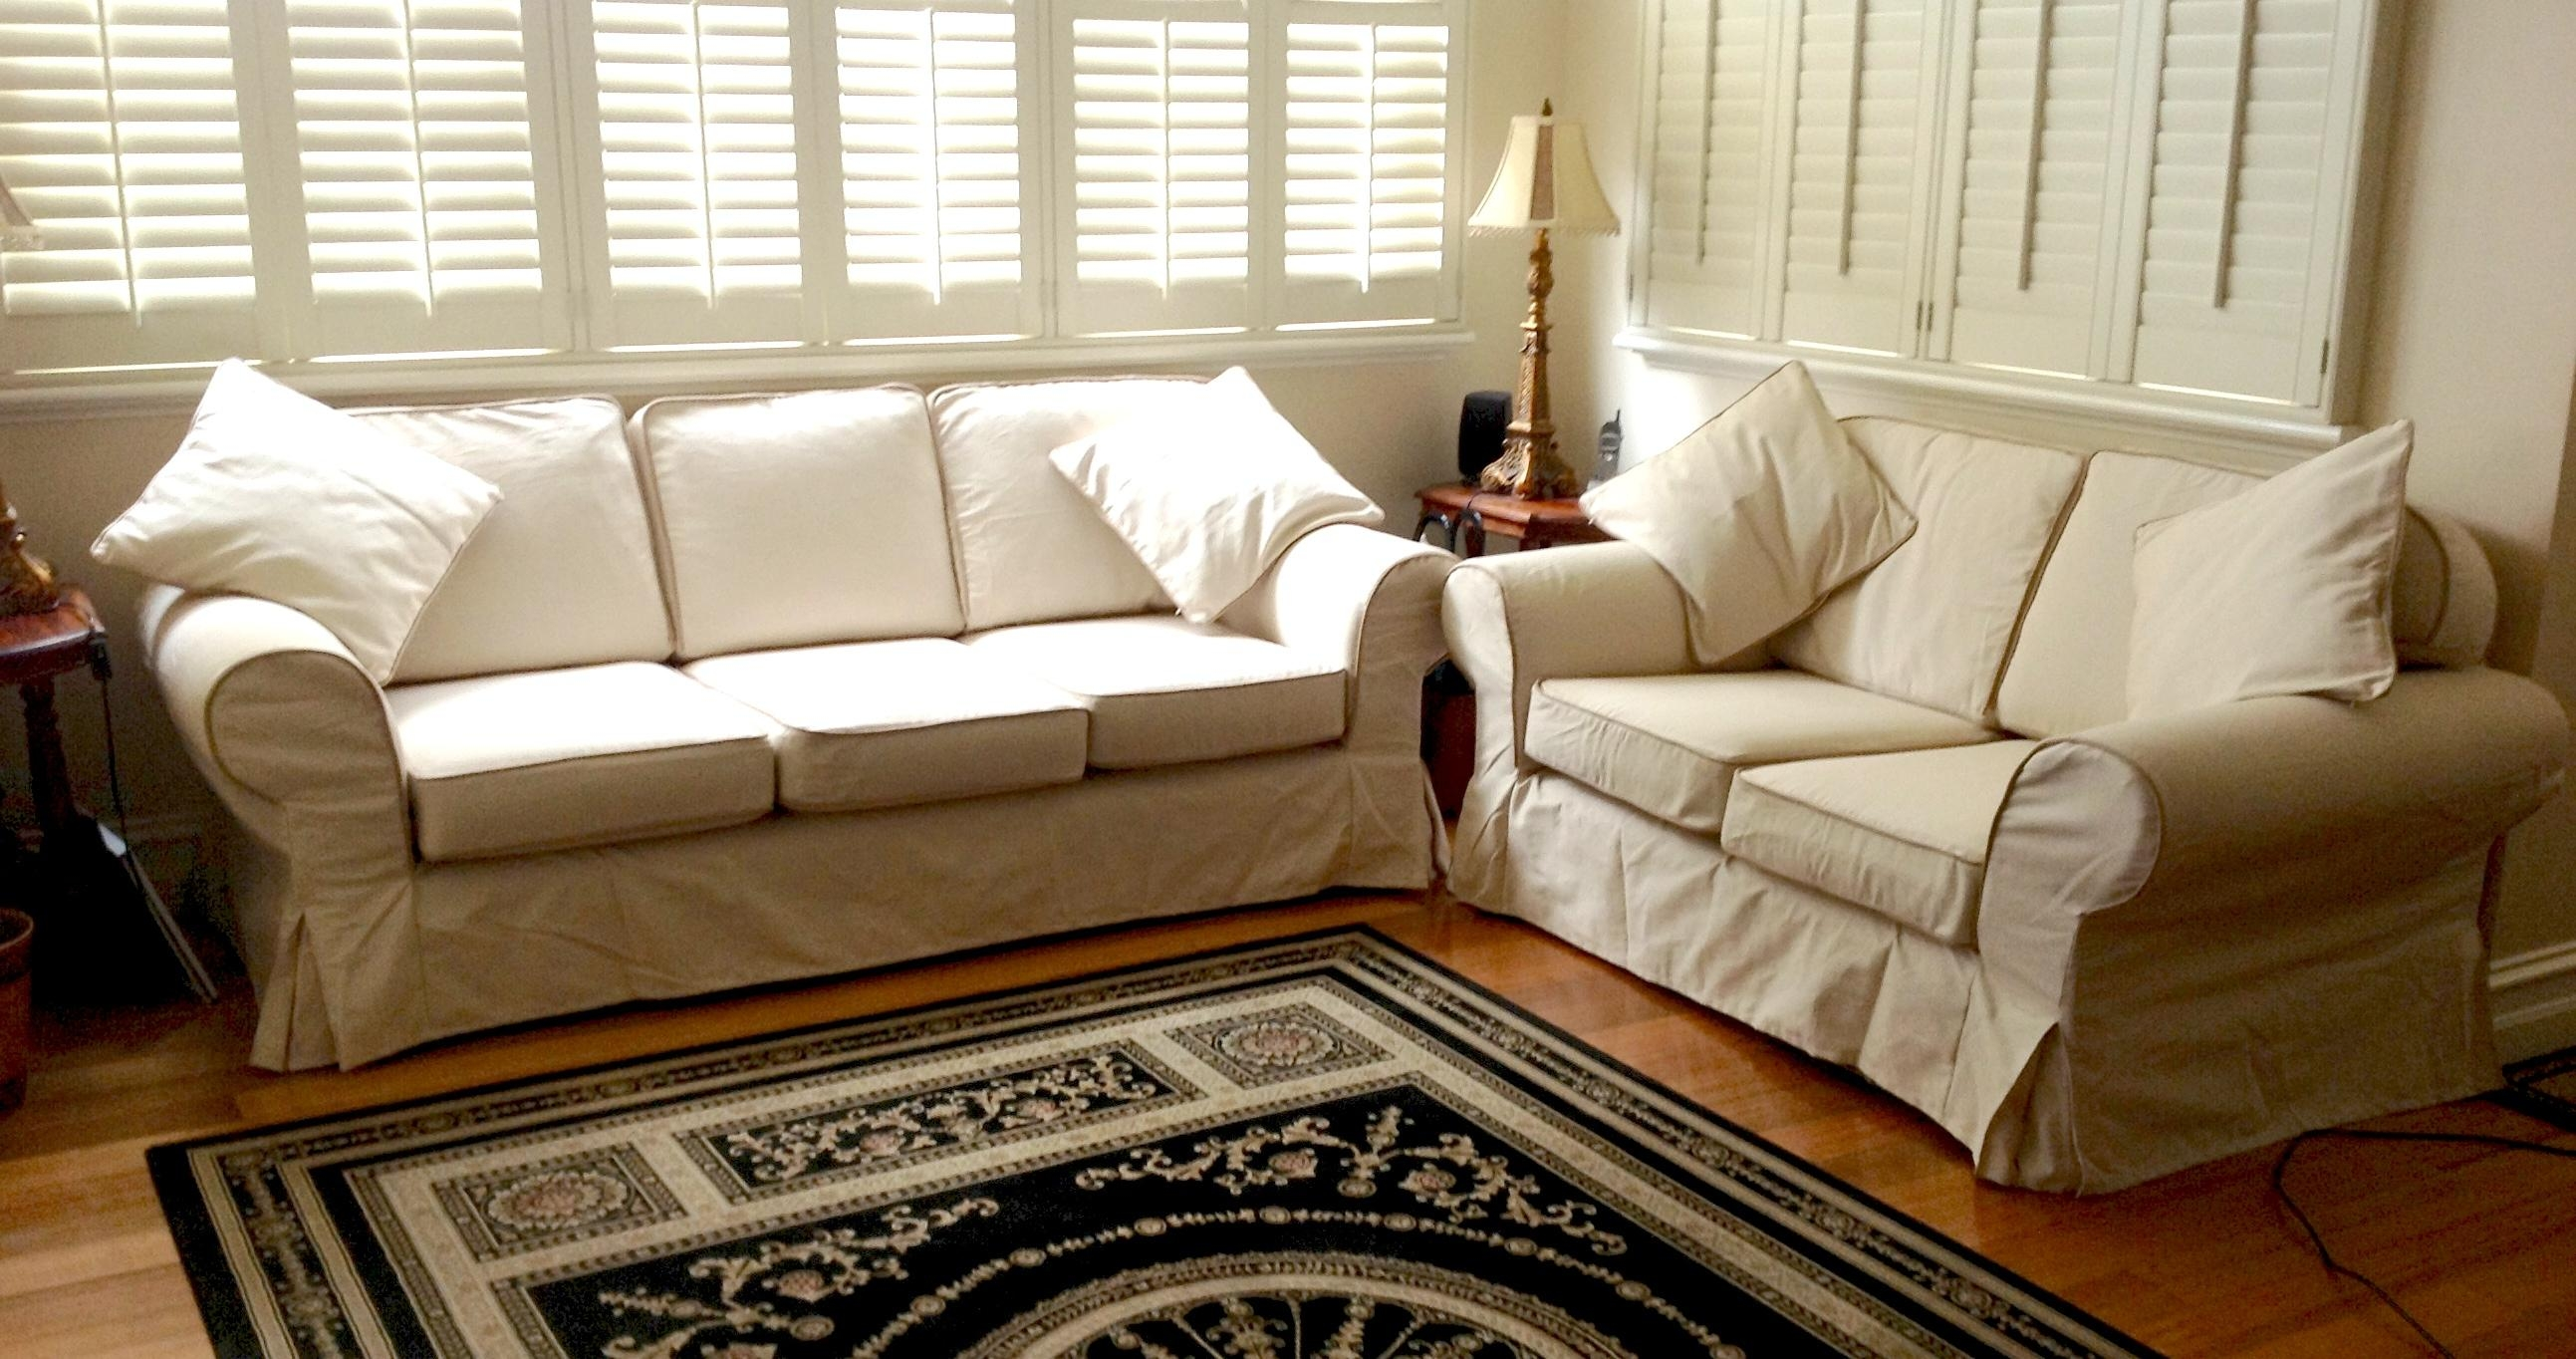 Custom Slipcovers And Couch Cover For Any Sofa Online Regarding Shabby Chic Sofa Slipcovers (Image 5 of 20)